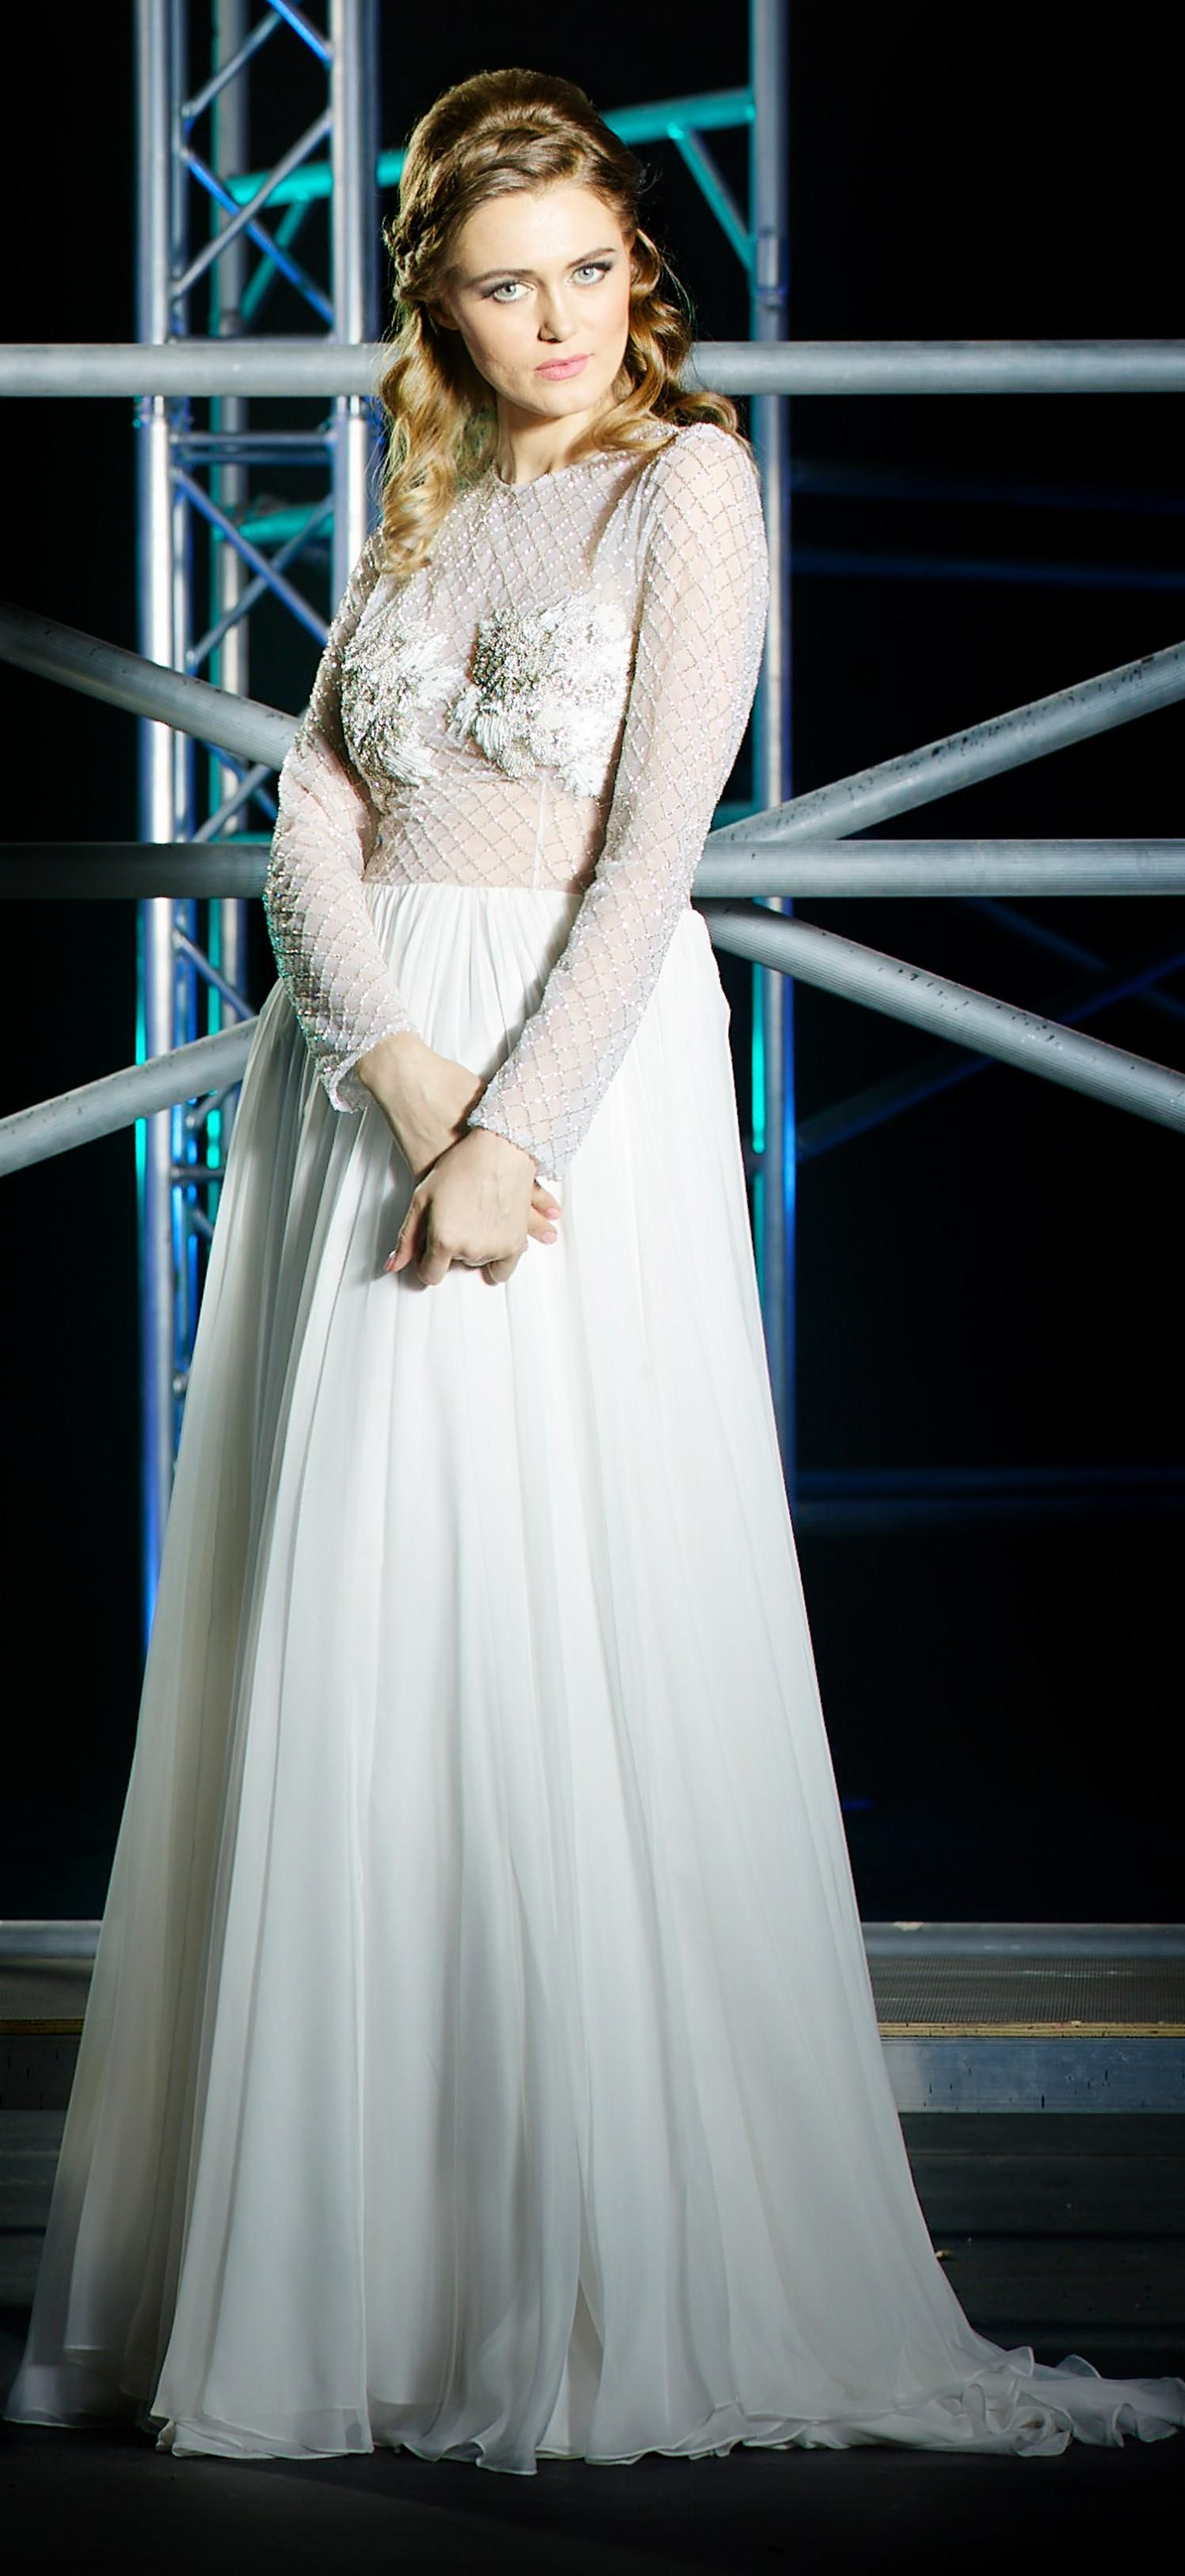 Wedding dress shops in deira dubai  Lets get married by SYBYHANA Couture Visit one of our stores Deira